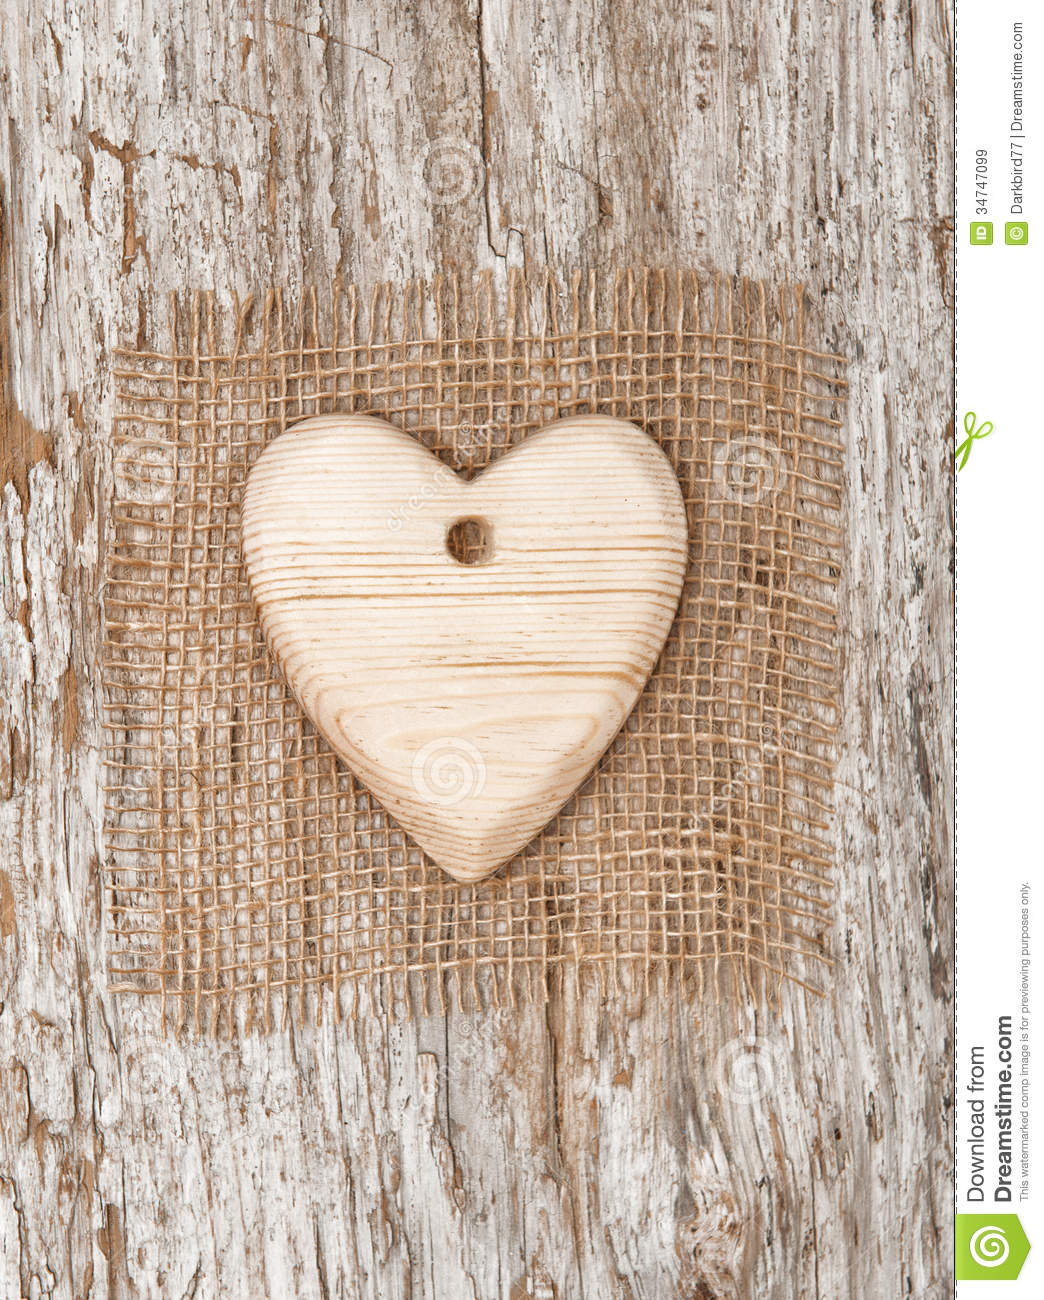 Wooden Heart With Burlap Textile On The Old Wood Stock ...